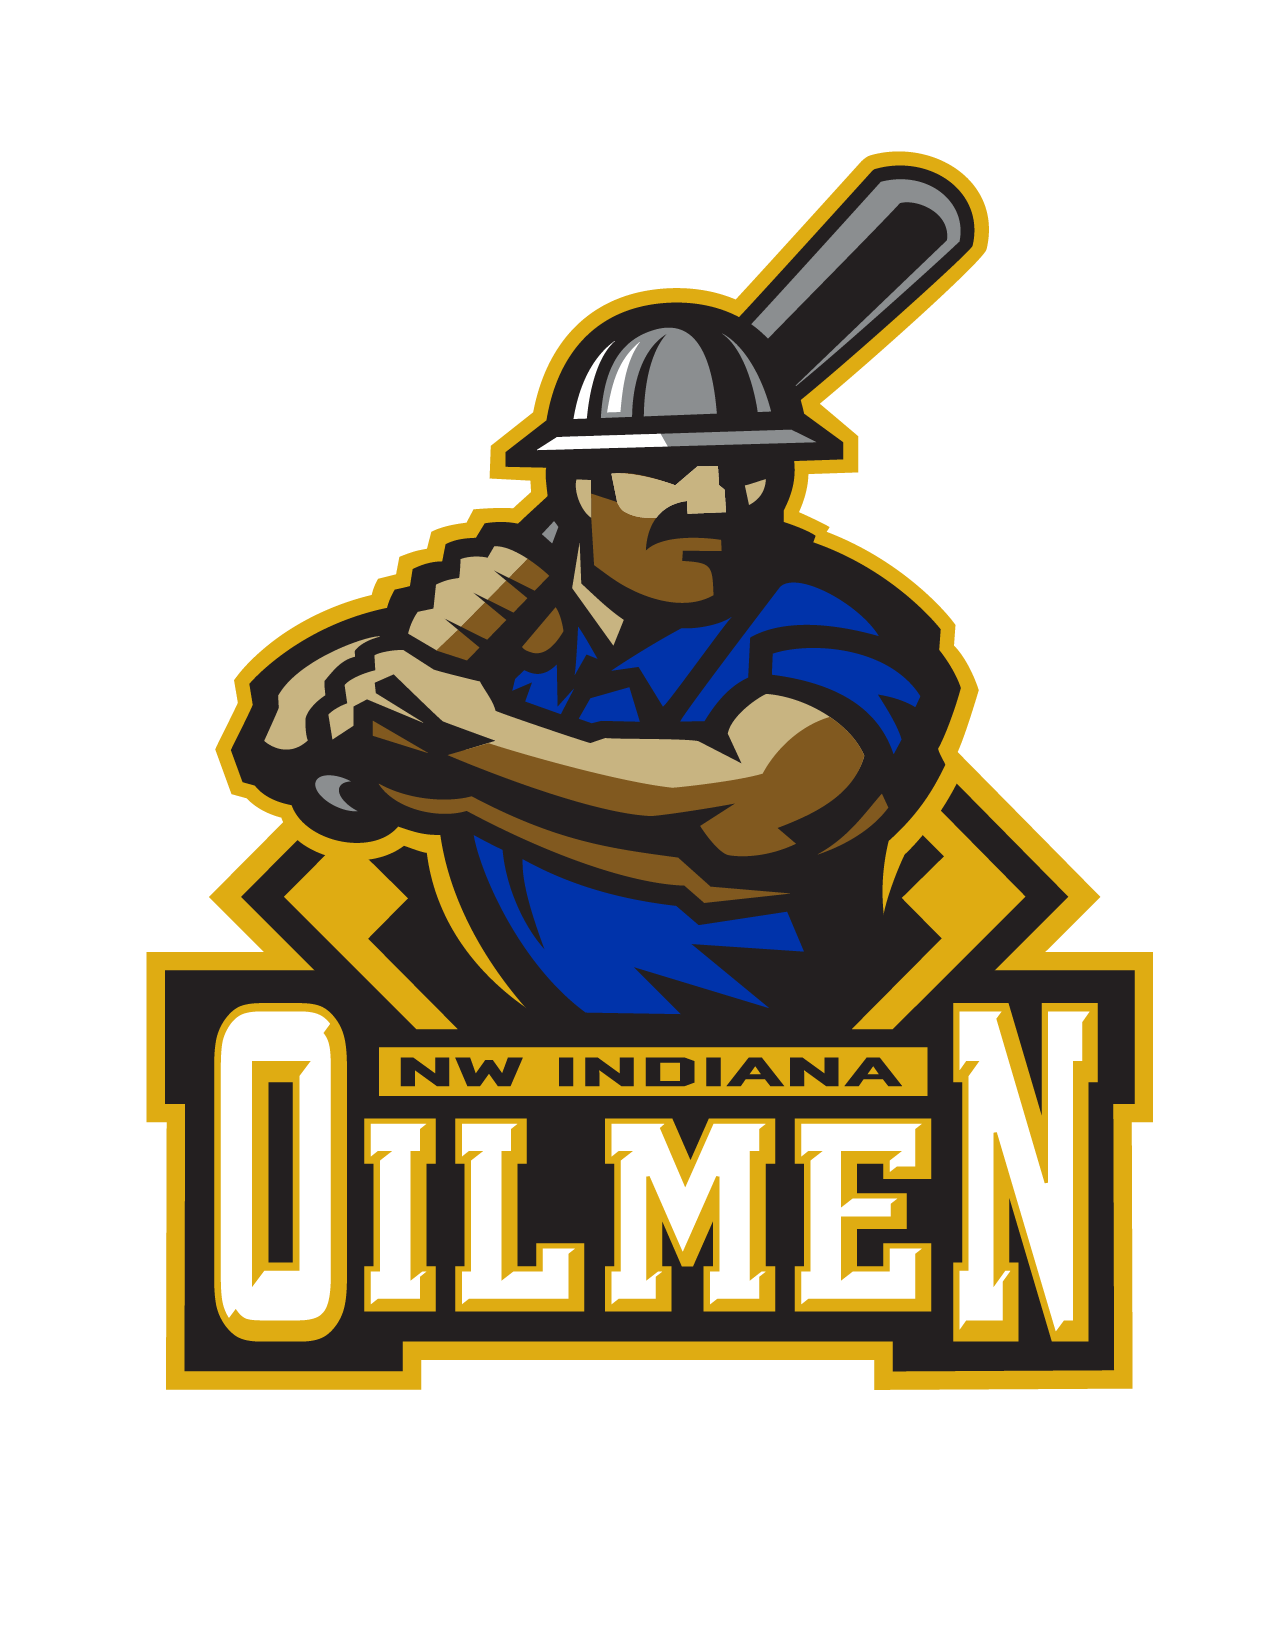 NWI OILMEN Primary [Converted]-01.png